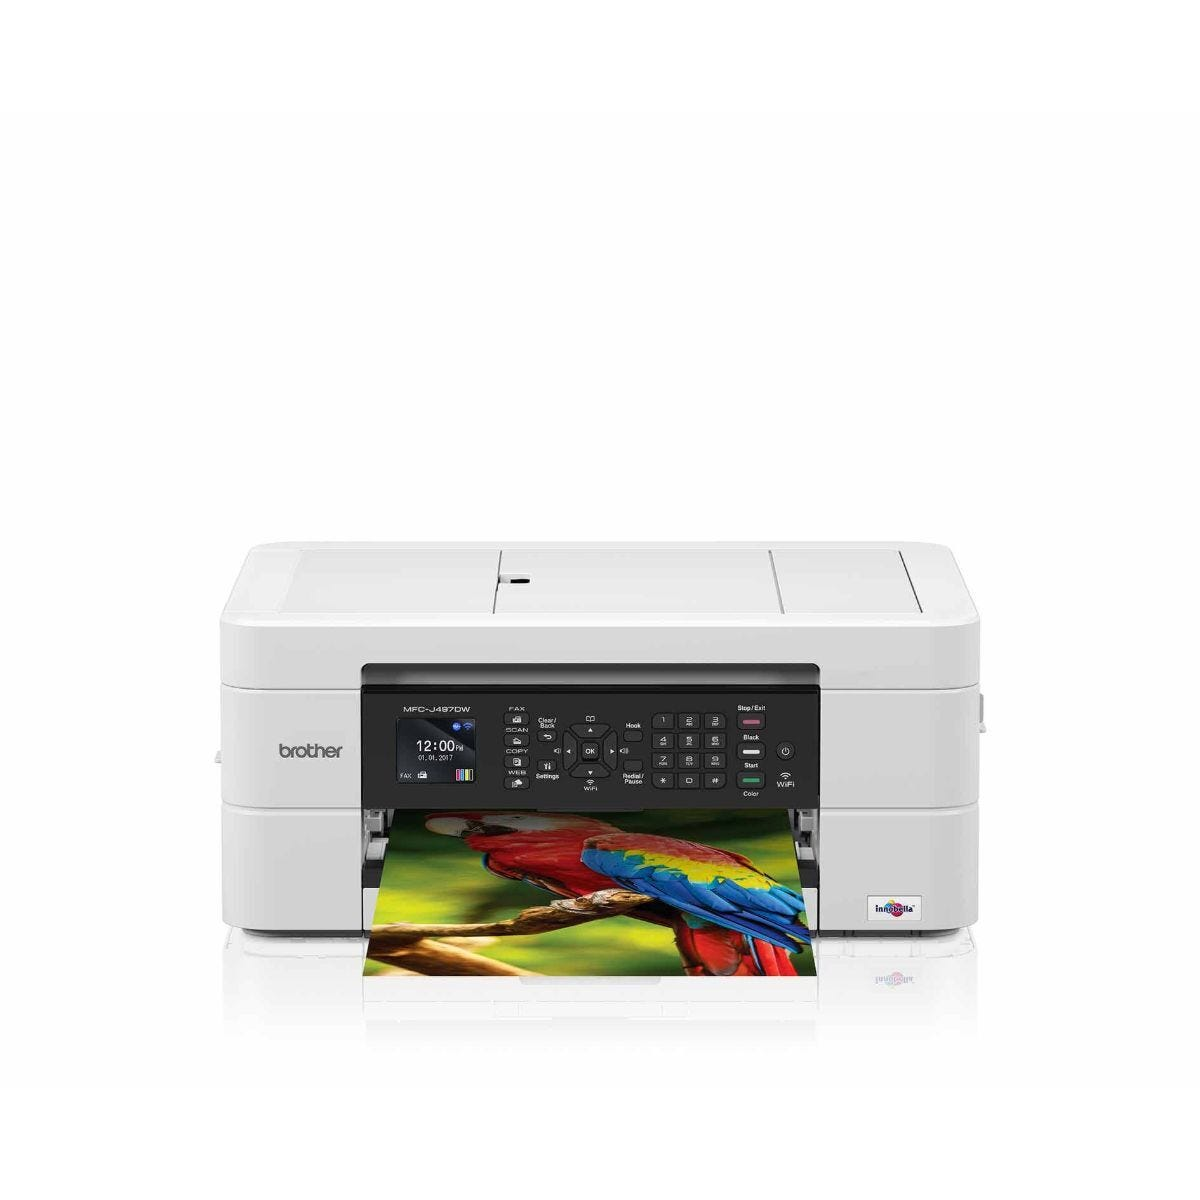 Brother MFC J497DW All-in-One Wireless Inkjet Printer with Fax